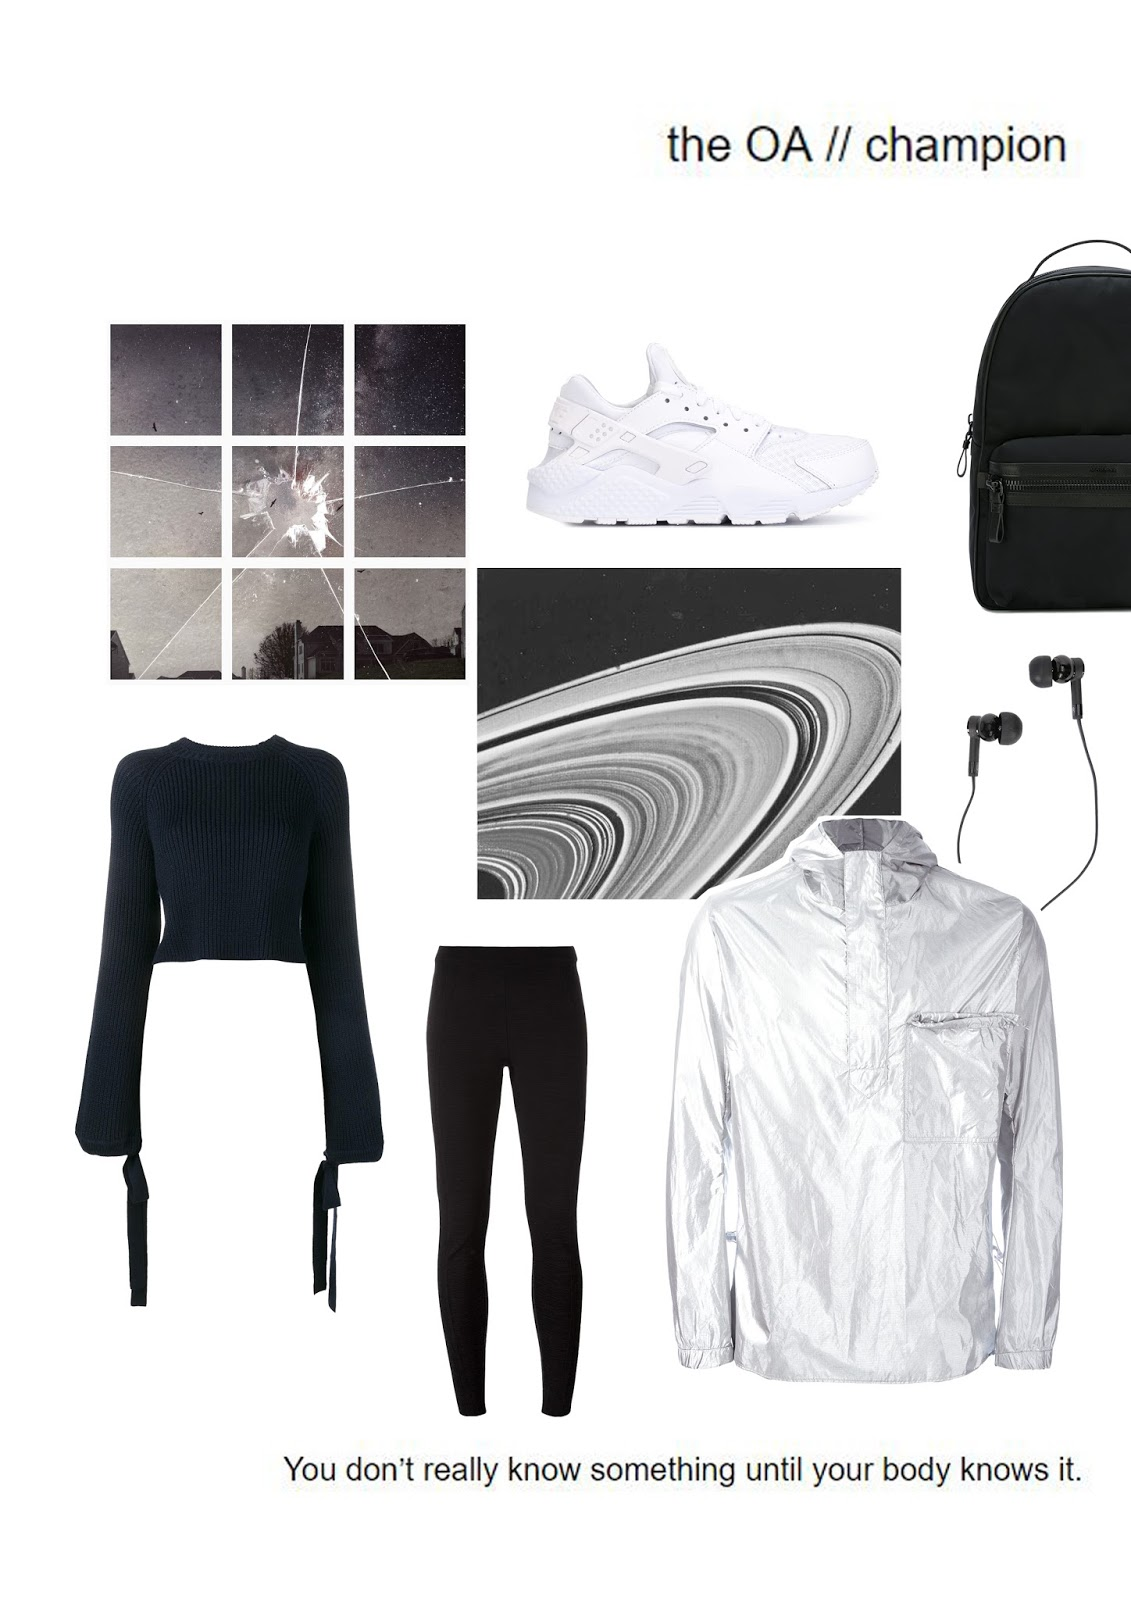 the oa, brit marling, collage, farfetch, activewear, outfit inspiration